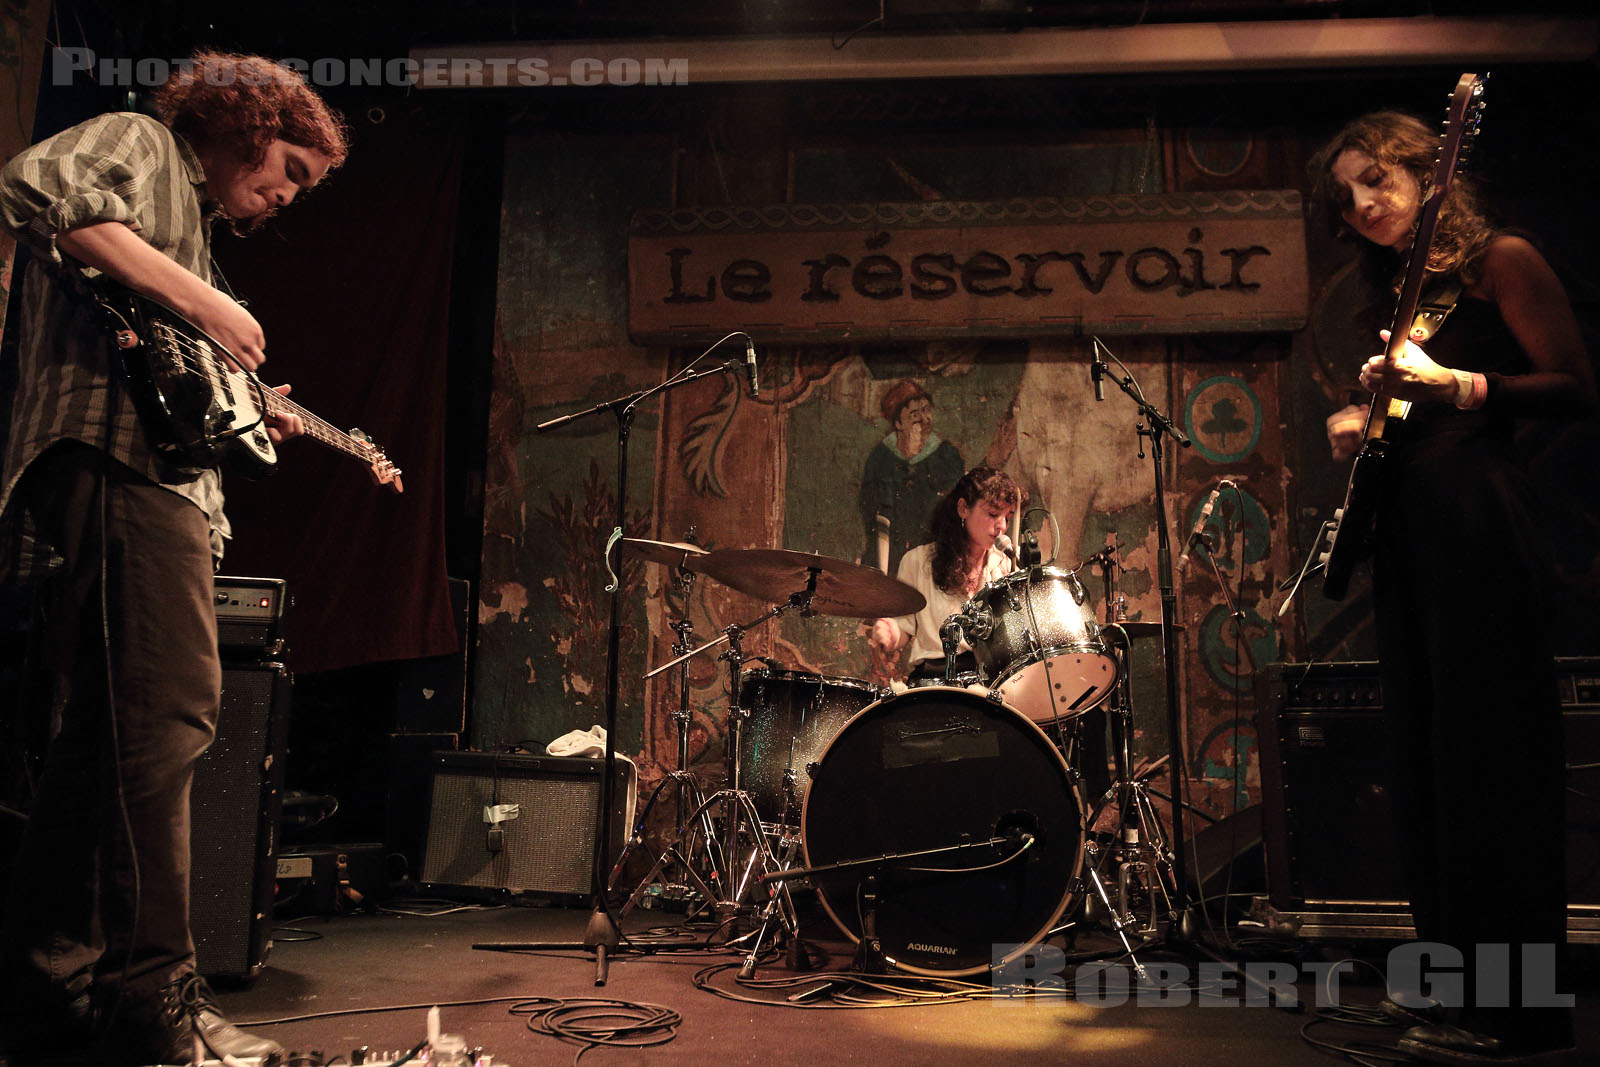 MINT FIELD - 2018-10-31 - PARIS - Le Reservoir